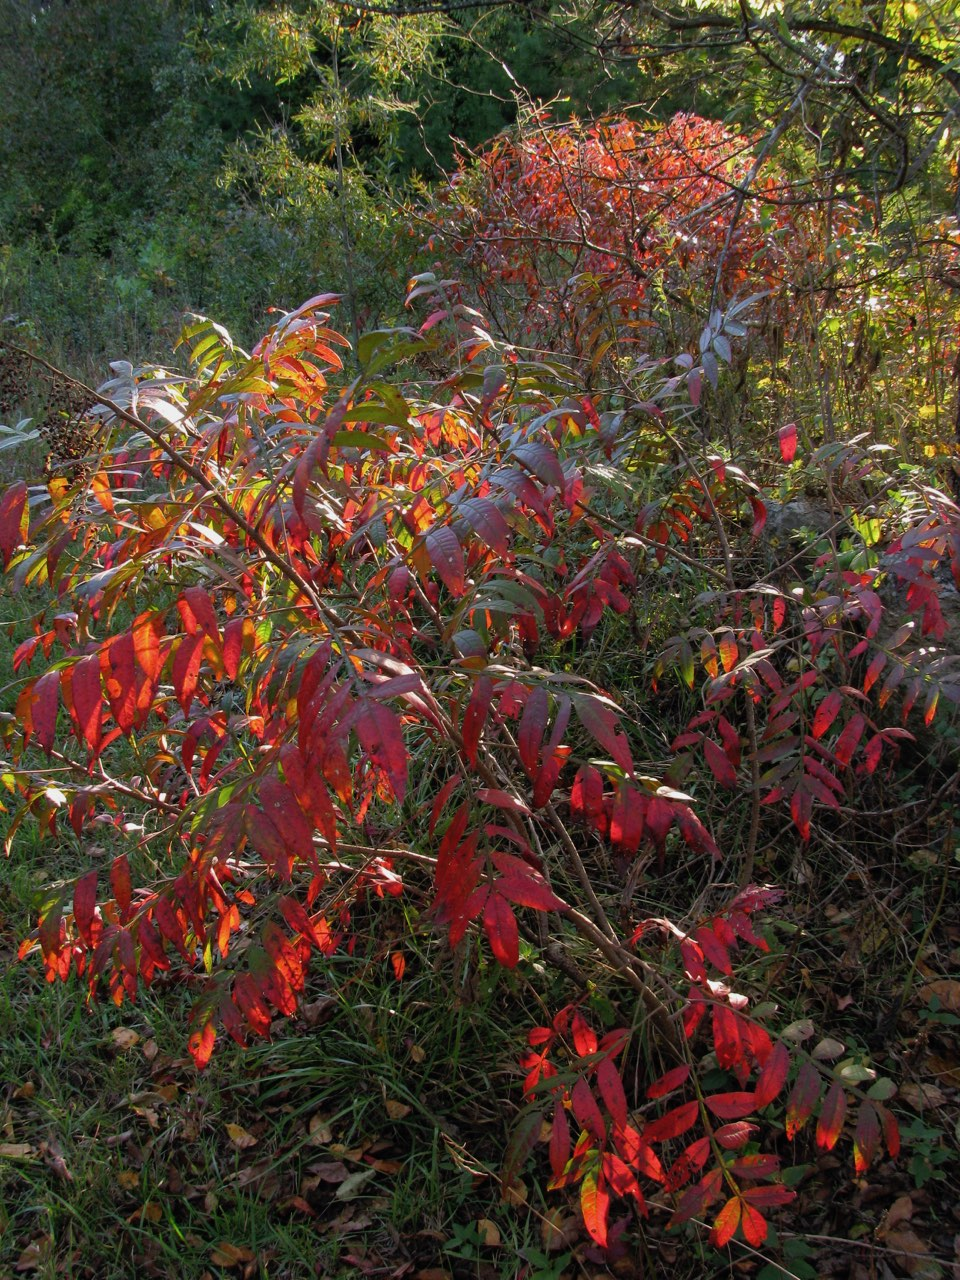 The Scientific Name is Rhus copallinum [= Rhus copallina]. You will likely hear them called Winged Sumac, Shining Sumac, Flameleaf Sumac, Dwarf Sumac. This picture shows the Shrub in the Fall of Rhus copallinum [= Rhus copallina]